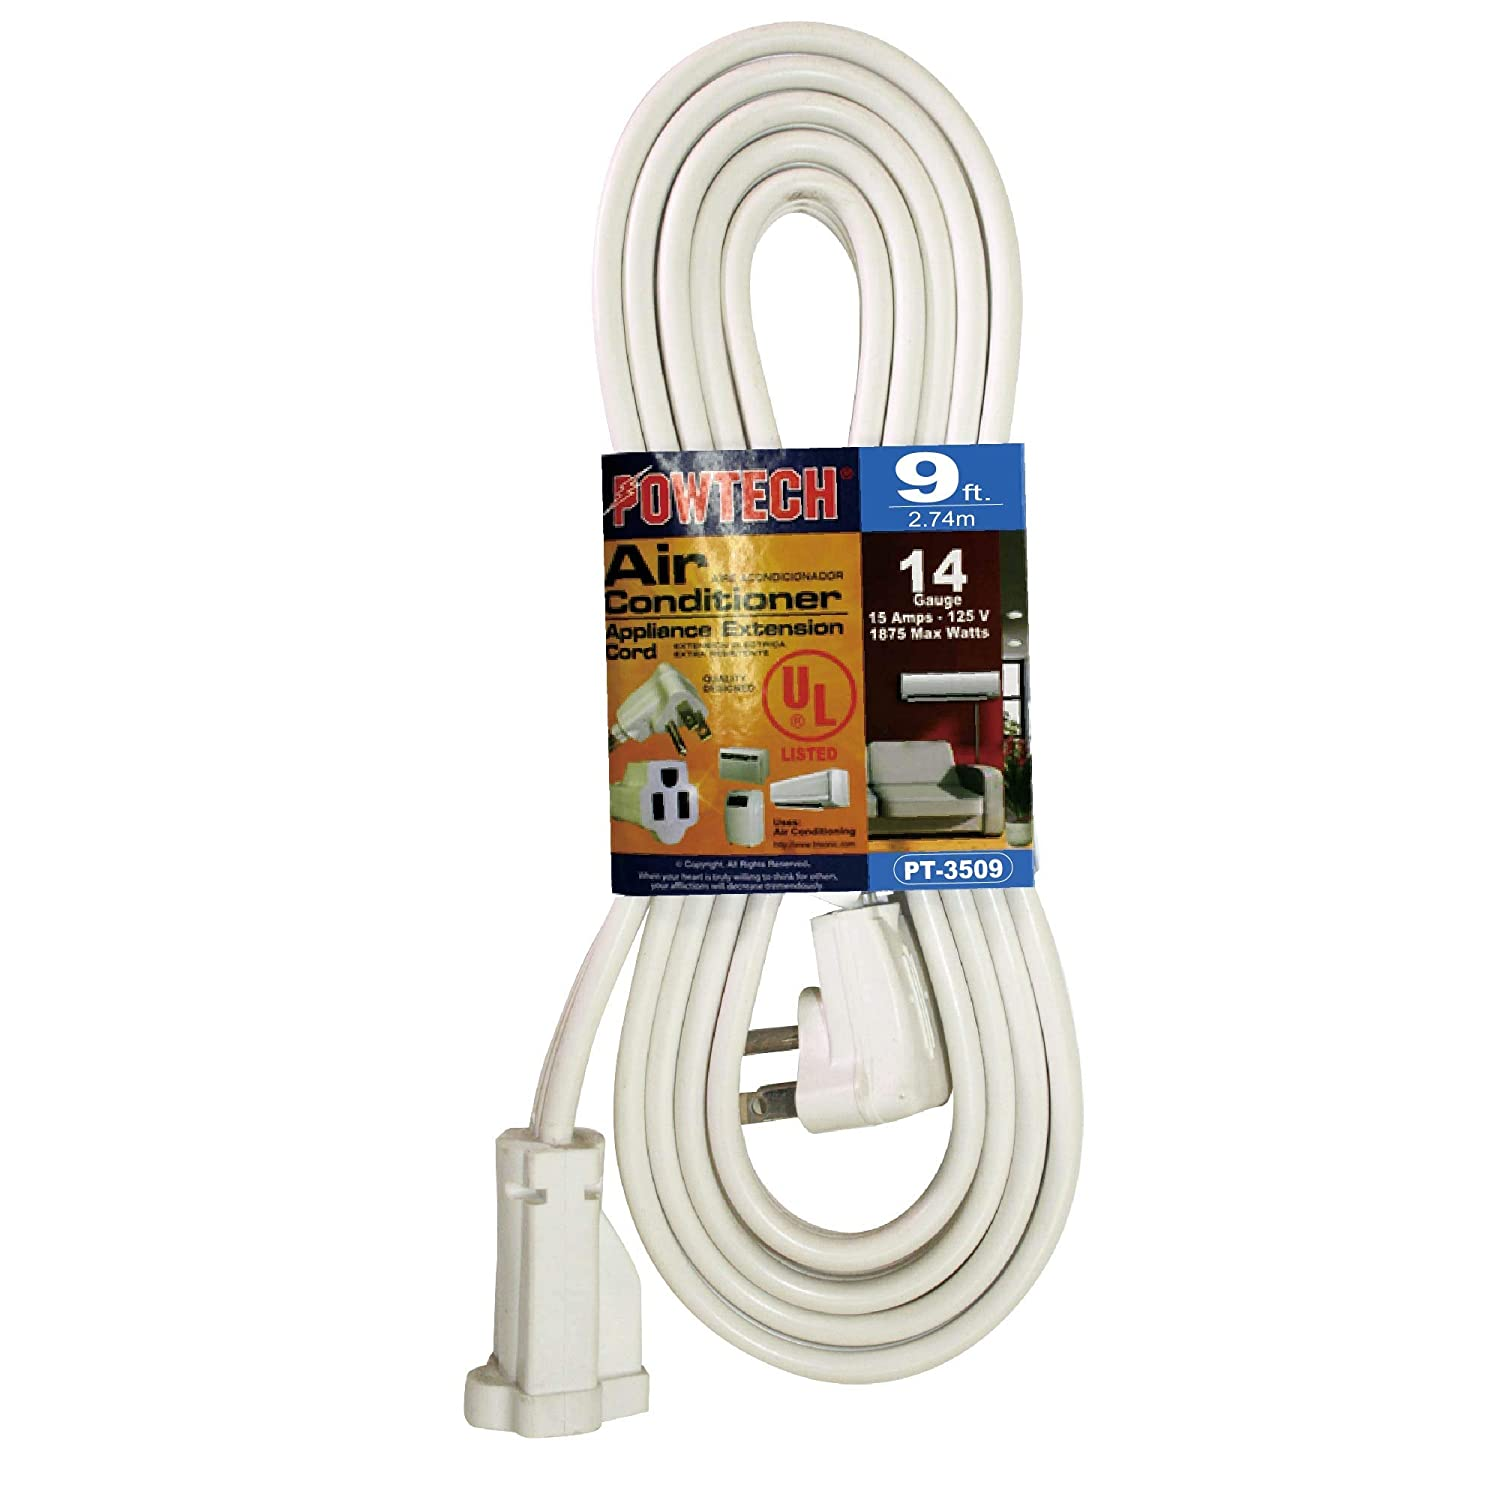 POWTECH Heavy duty 9 FT Air Conditioner and Major Appliance Extension Cord UL Listed 14 Gauge, 125V, 15 Amps, 1875 Watts GROUNDED 3-PRONGED CORD